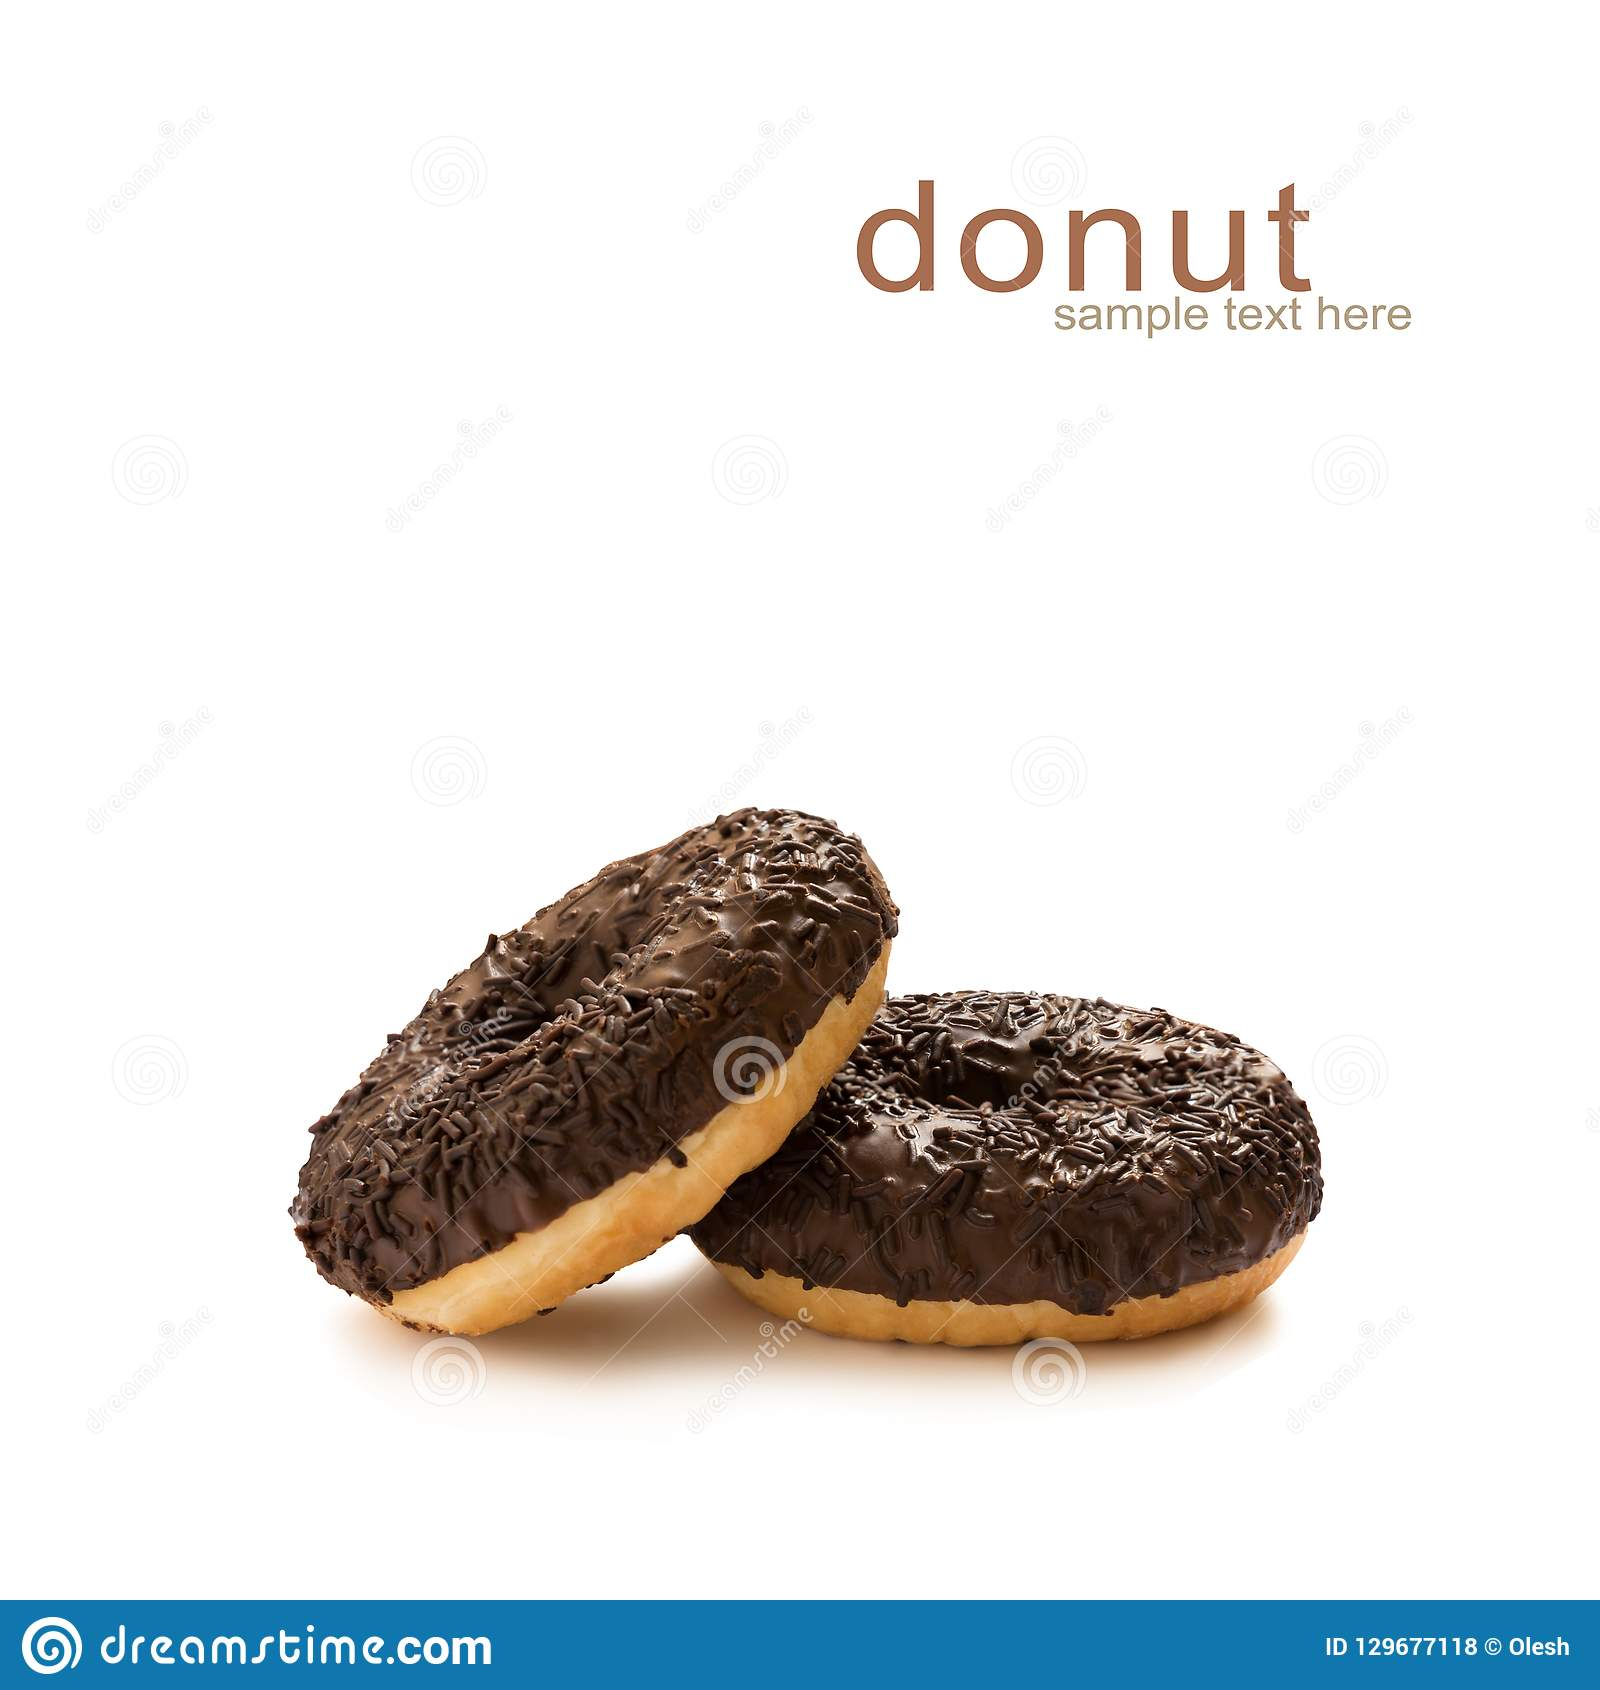 Donuts in chocolate glazed with chocolate chips isolated on the white background, seamless pattern, top view, flat lay